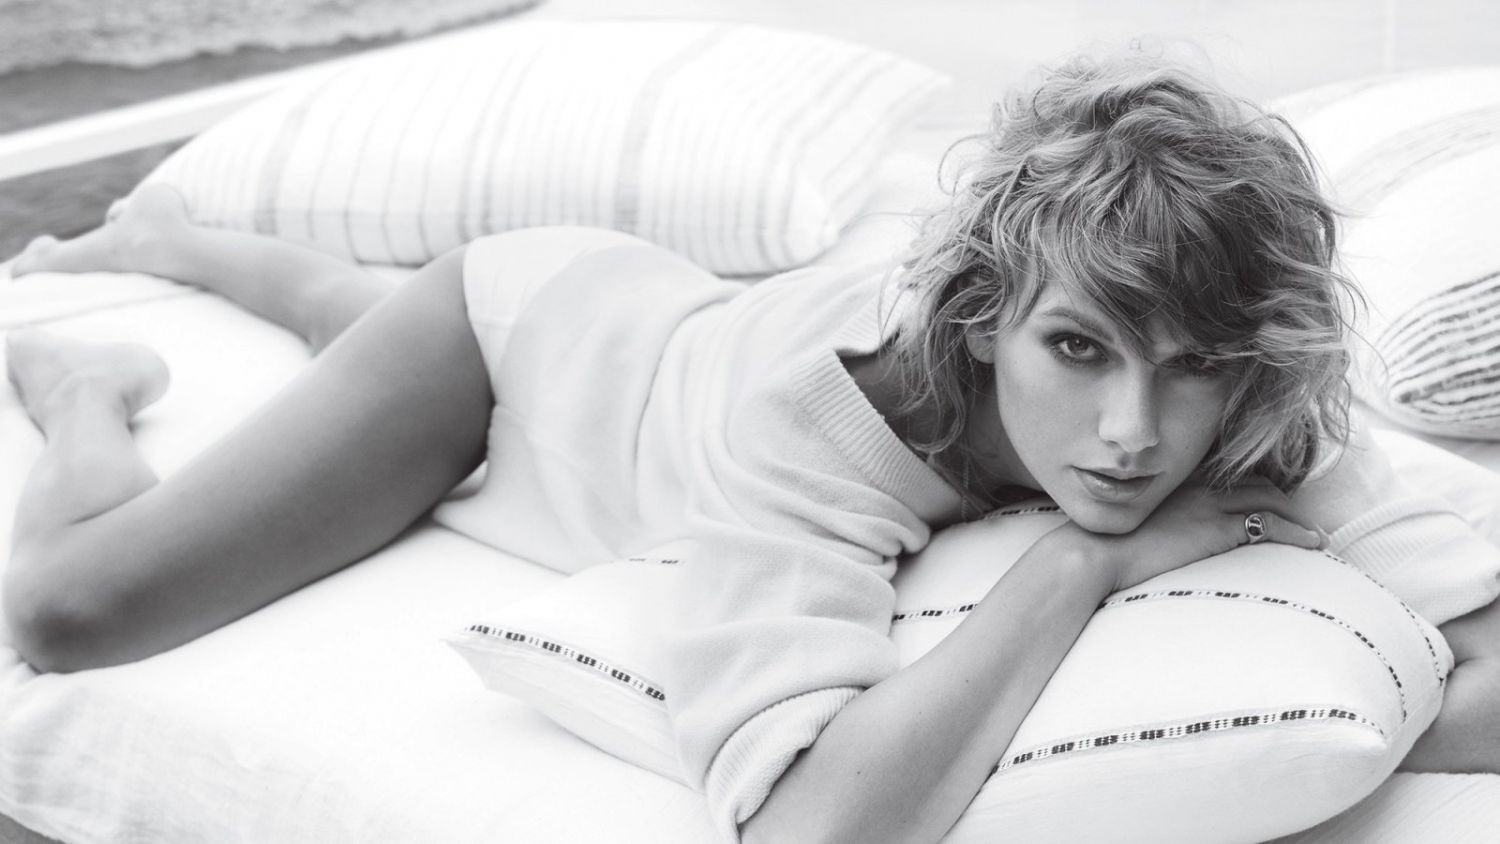 Taylor Swift for GQ Magazine Photoshoot